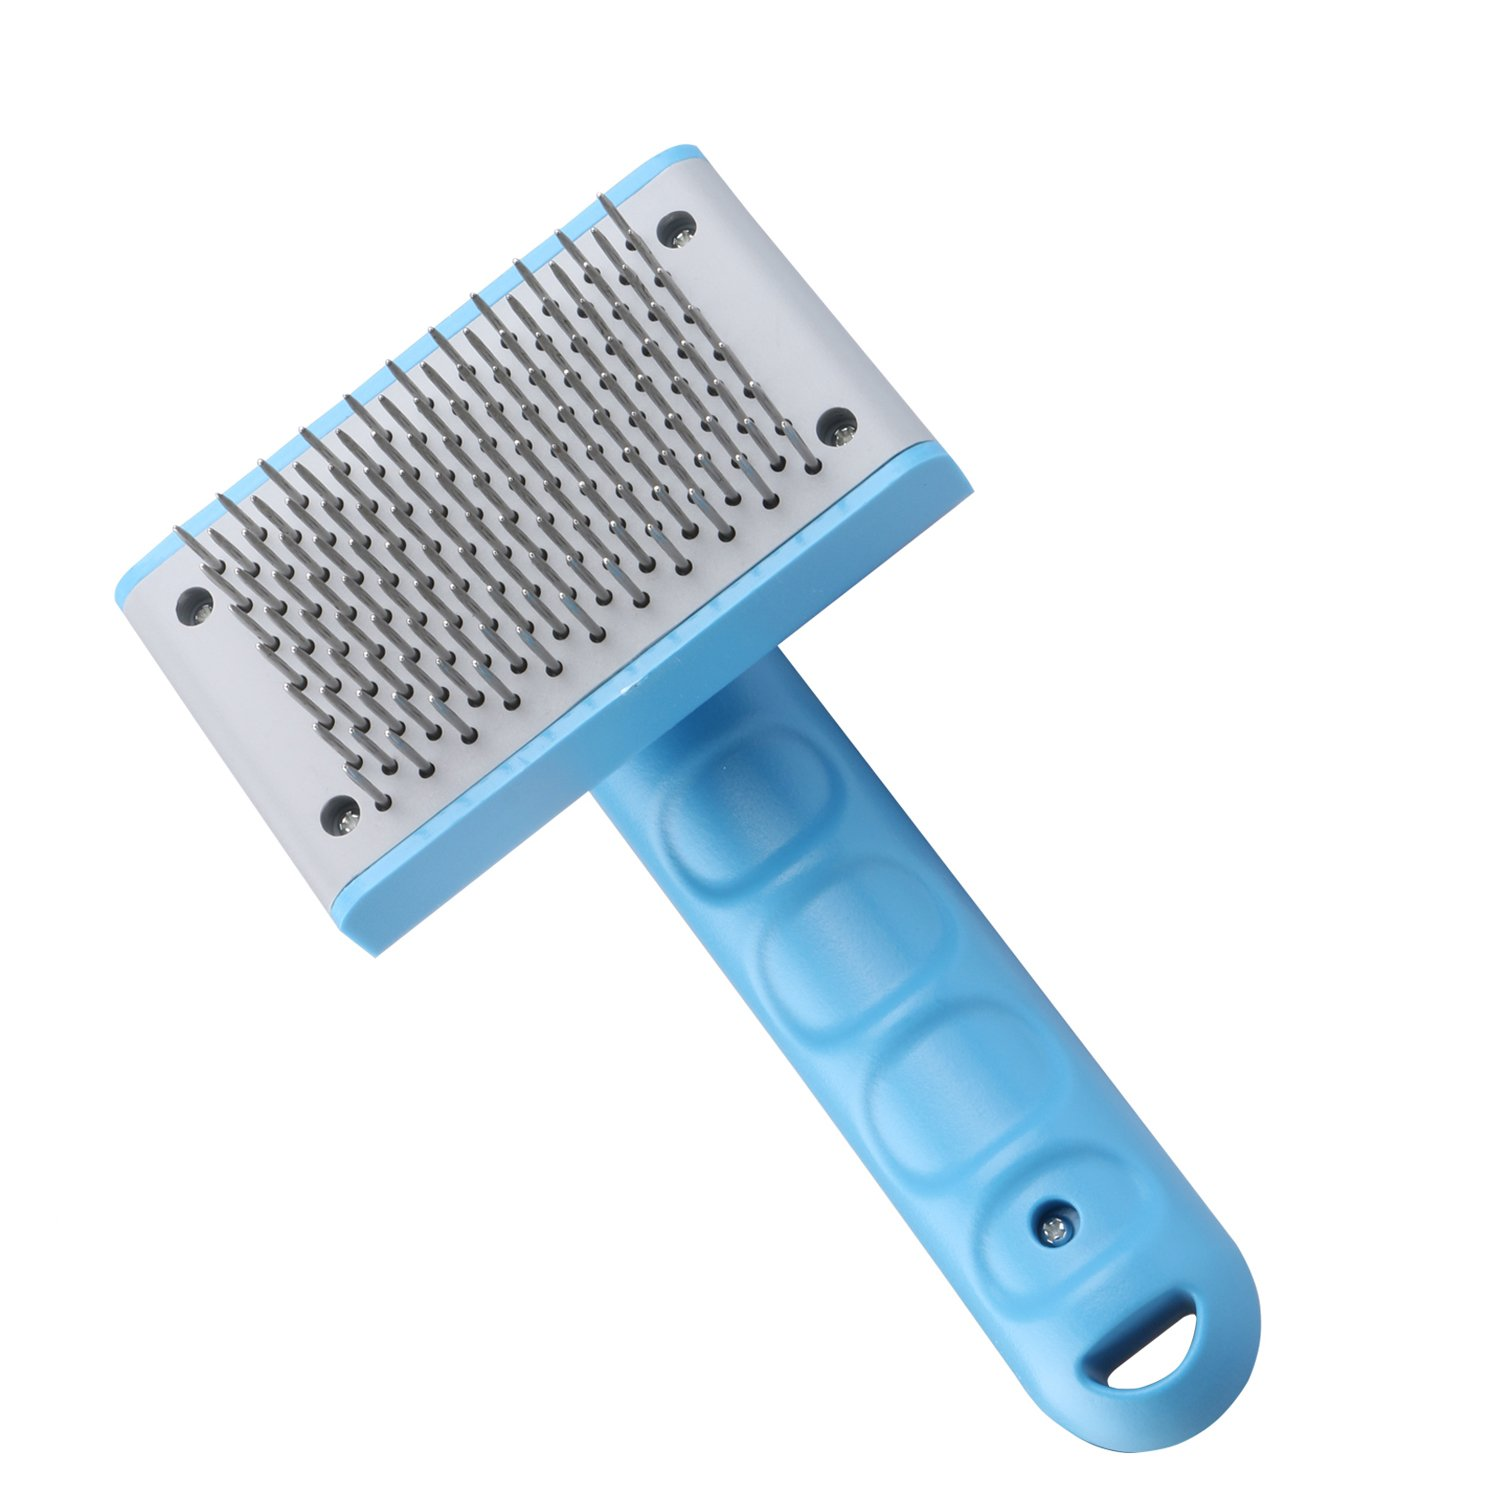 Pet Slicker Brush Grooming Deshedding Tools with Retractable Stainless Steel Bristle Slicking Comb Easily to Collect and Remove Pet Hairs